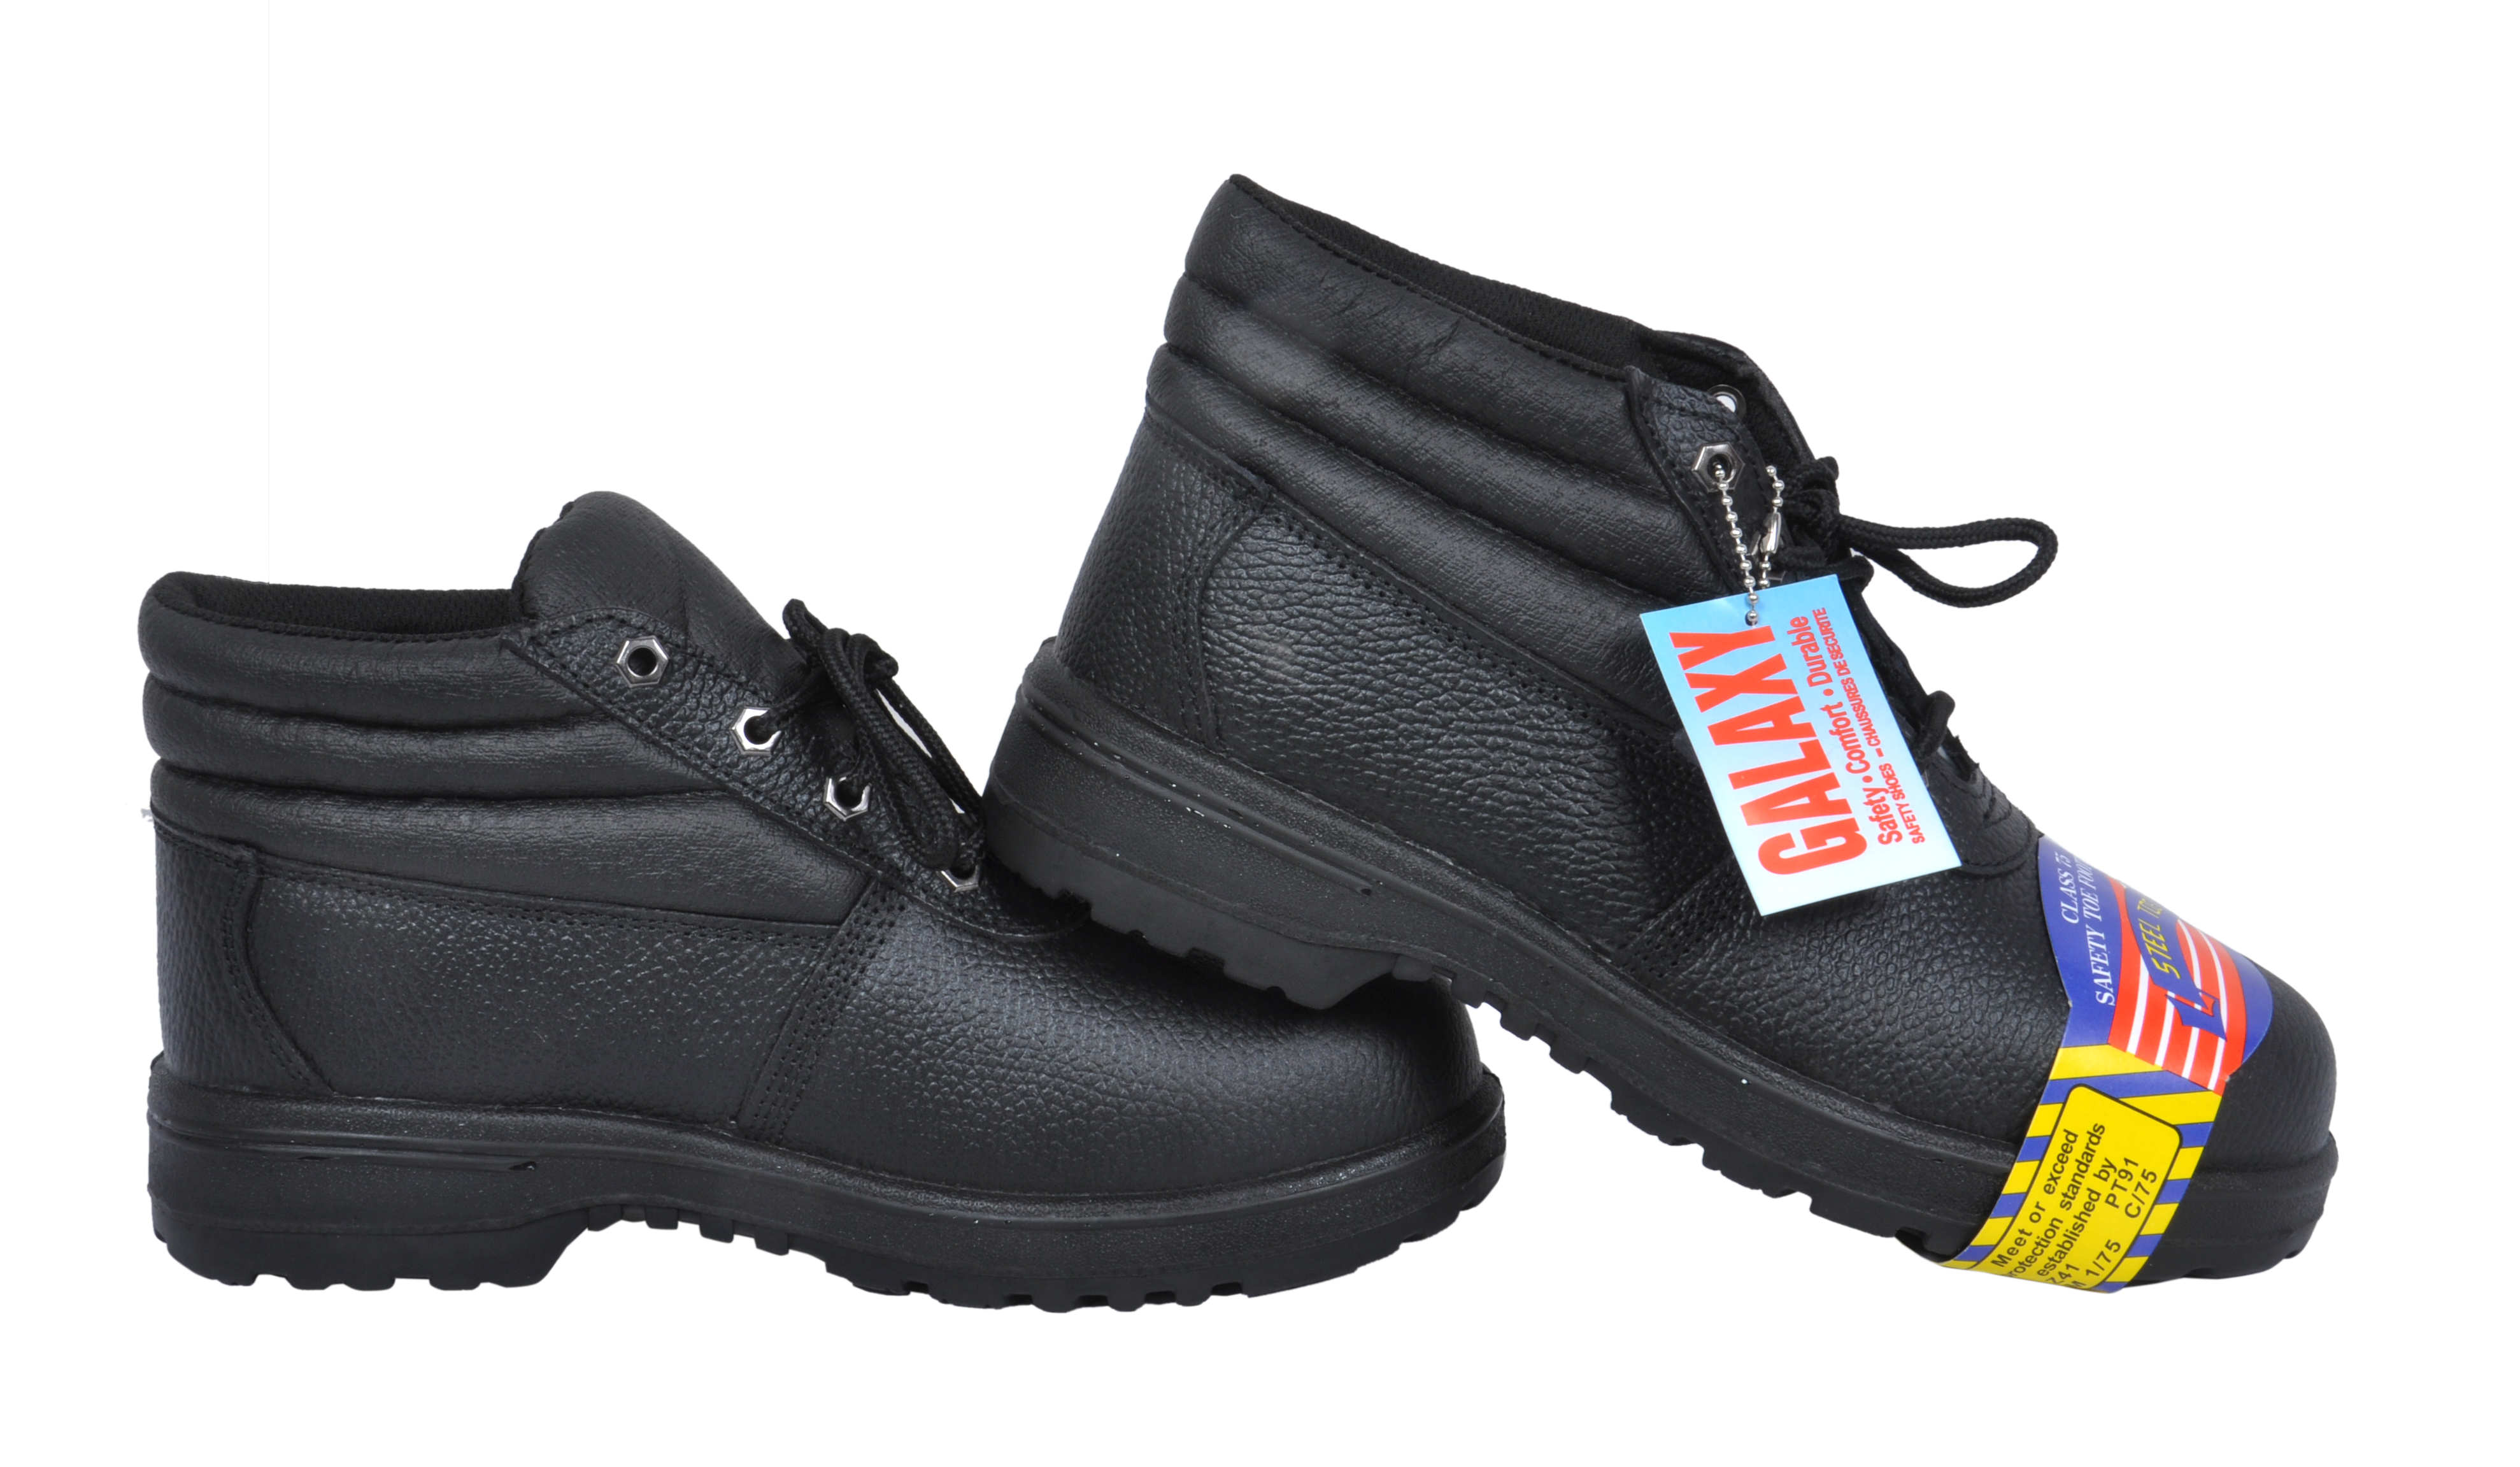 Safety Shoes Image